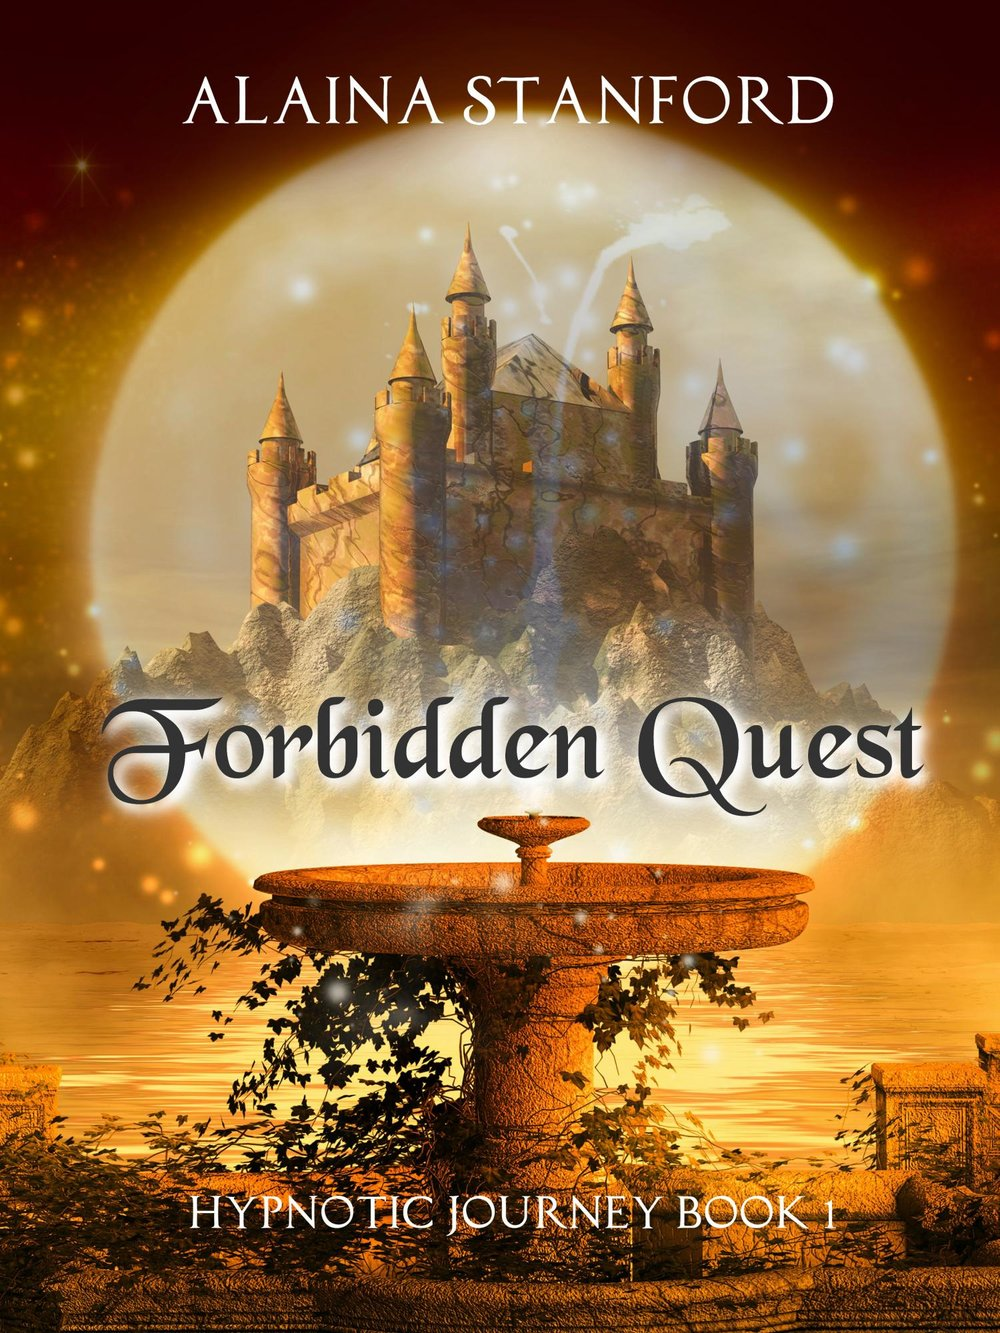 Forbidden Quest, Book 1  An intense Fantasy Adventure Series!   Roleplay at its best...sure, it's all fun and games until someone gets their arm cut off.   Wouldn't it be cool to suddenly have the battle skills of a seasoned warrior? What if the battles felt real, but there was no physical risk to you? That would be perfect, except for one thing. The hypnotist in charge of your session is insanely evil, and is using you as a weapon in a plot for revenge. Four friends—two in love, two in hate—enter into a group hypnosis study attempting to introduce realistic fantasy adventures to small groups. Expecting a video game-type of adventure as fantasy characters, they begin their journey to rescue an Elf Queen from a crystalline prison. Yet, as soon as they fall under the hypnotist's spell, everything goes wrong. Suddenly the adventure becomes more real than they could ever have imagined. Soon our small group of adventurers finds themselves in a hostile world with no escape...